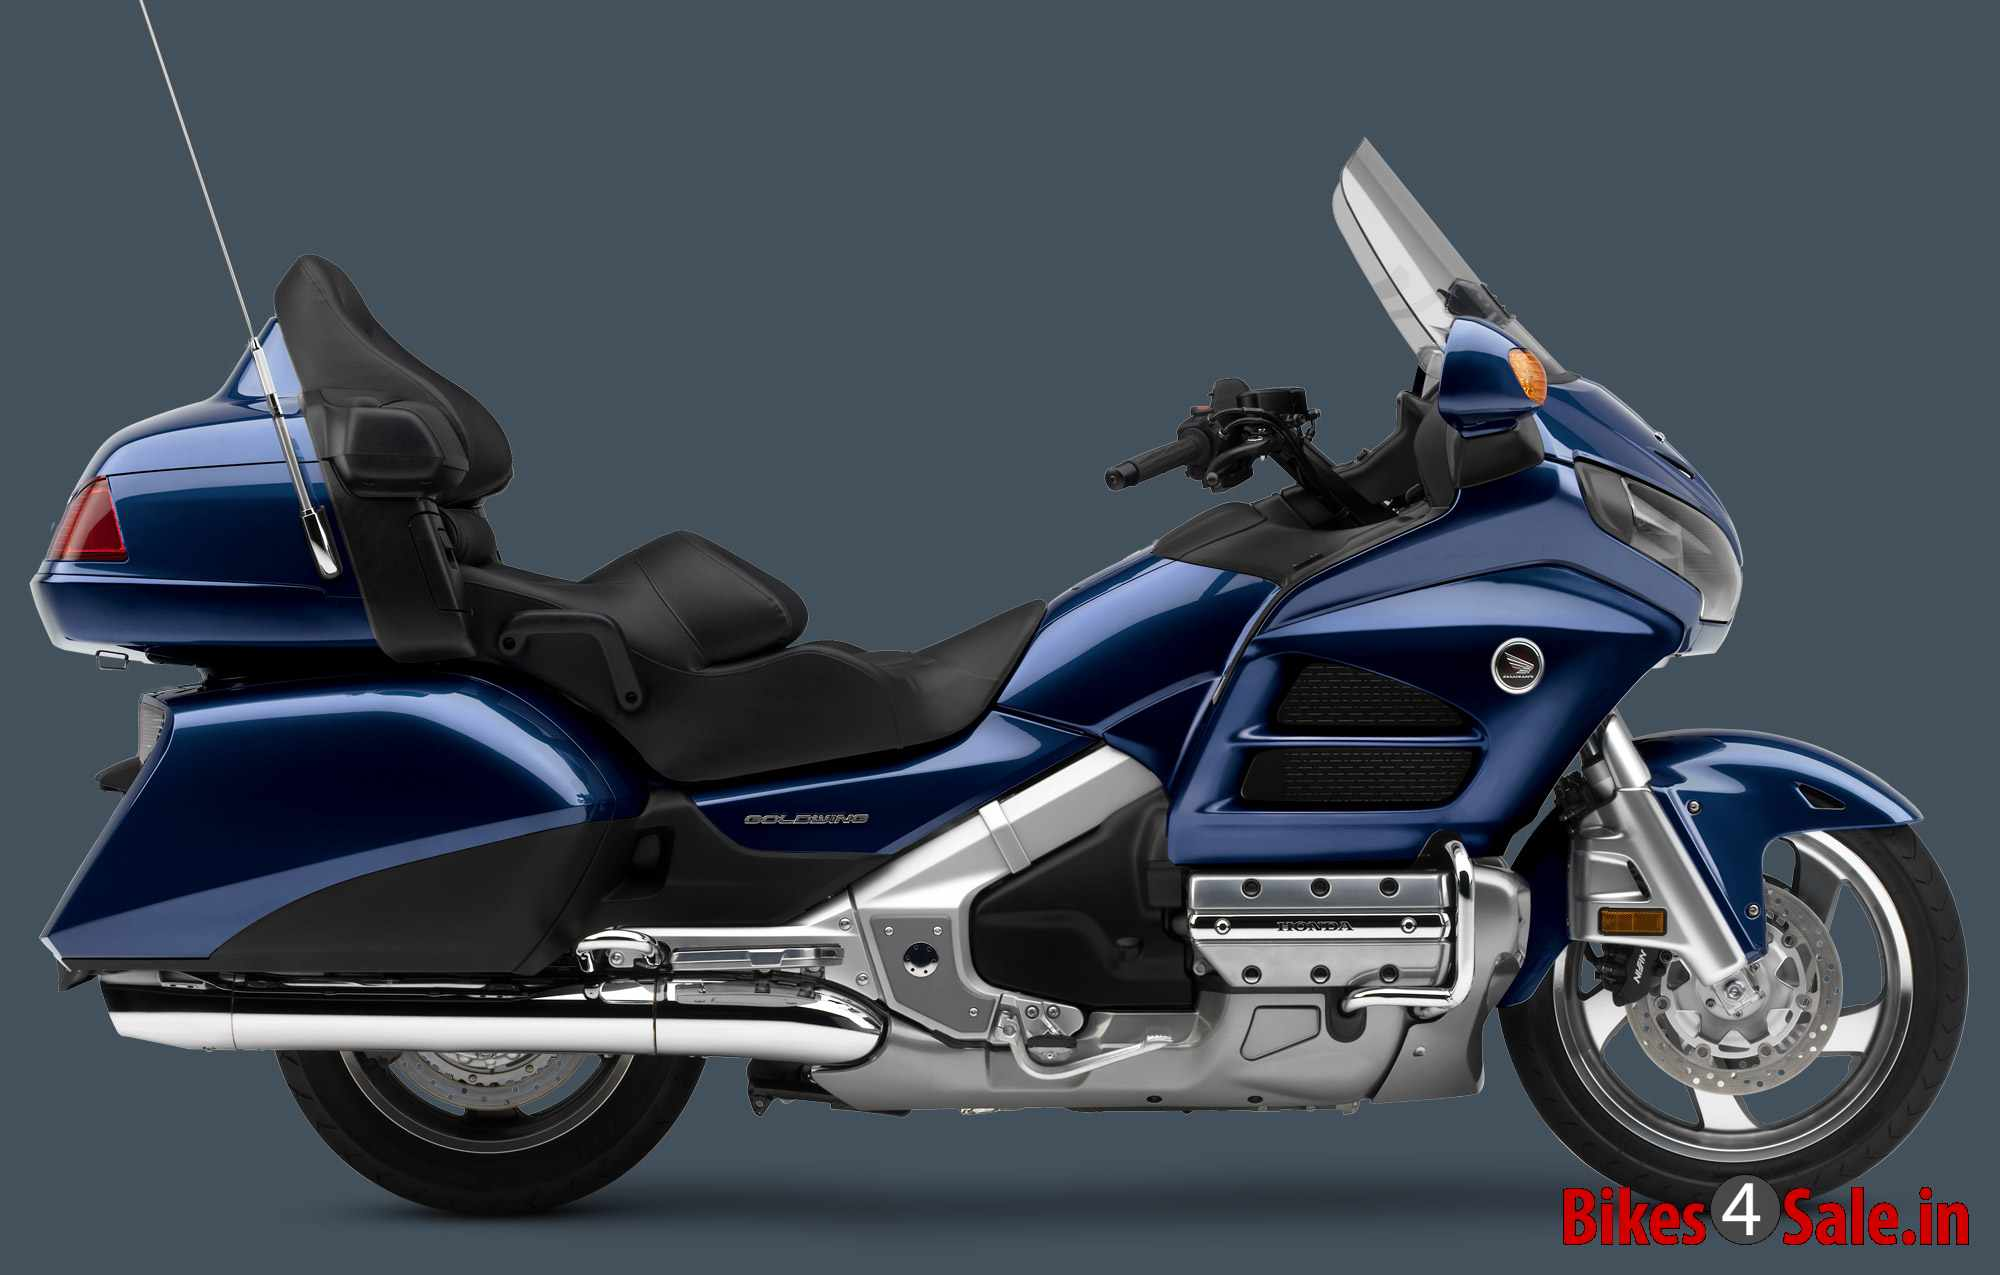 Honda Gold Wing Gl1800 Motorcycle Picture Gallery Pearl Blue Colour 1970 Cb 90